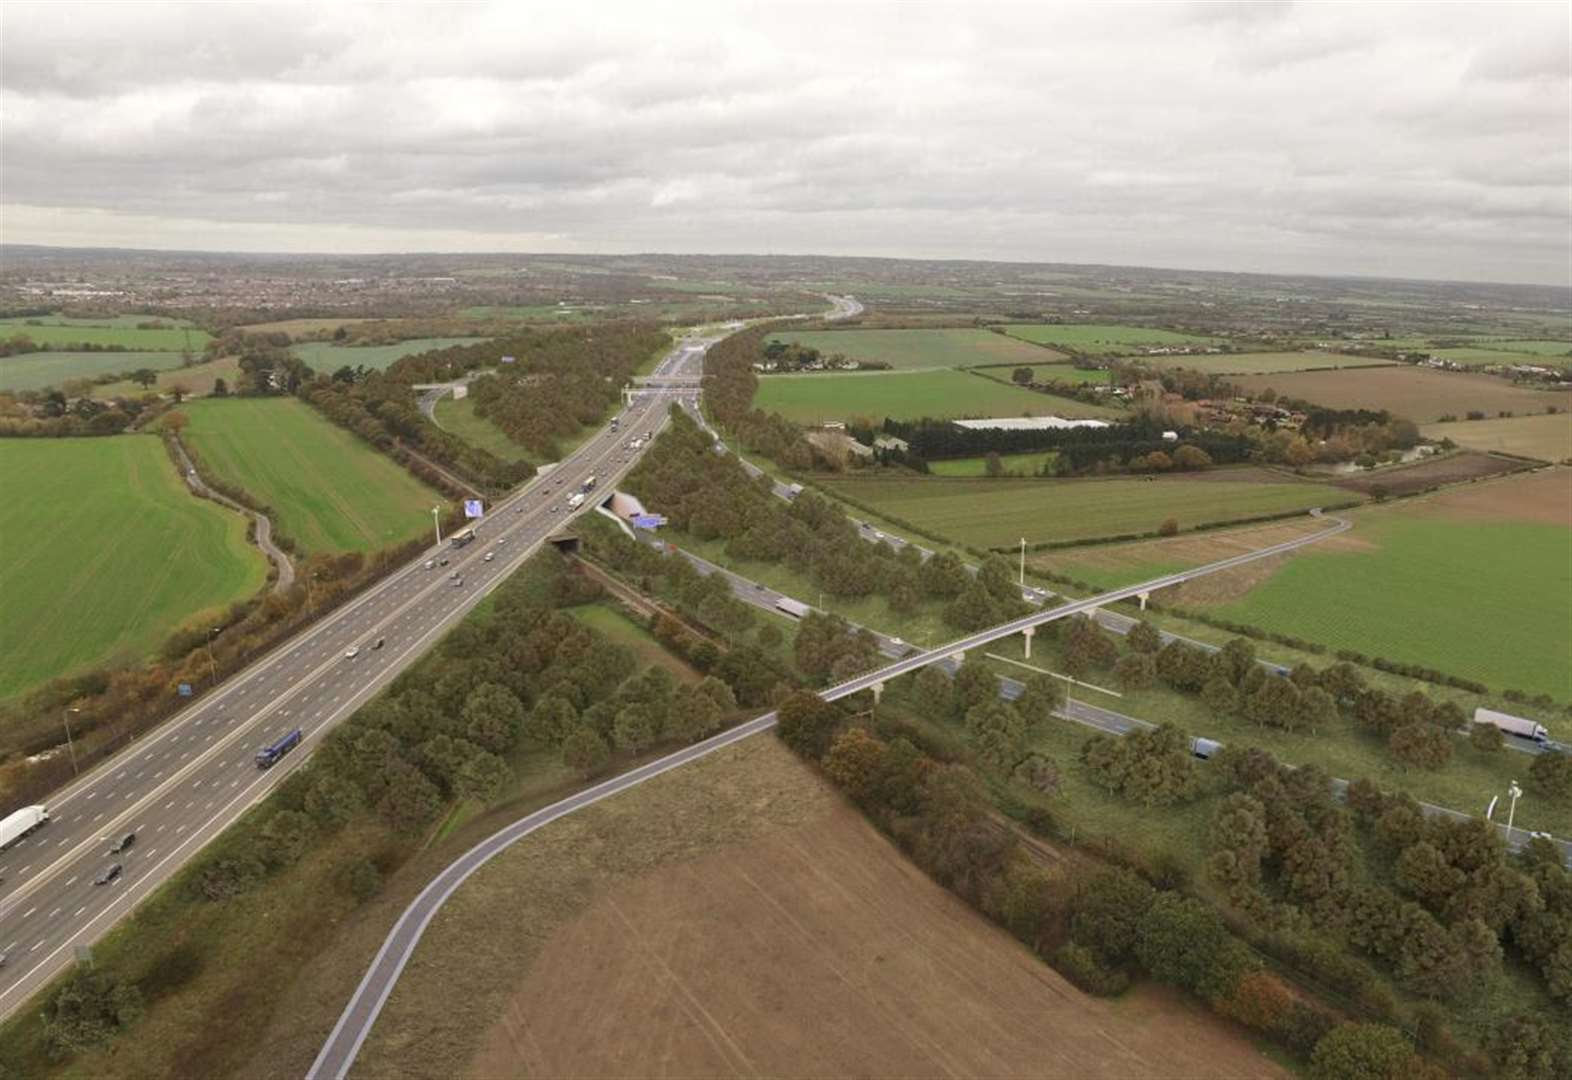 Crossing the 'biggest road project since the M25'